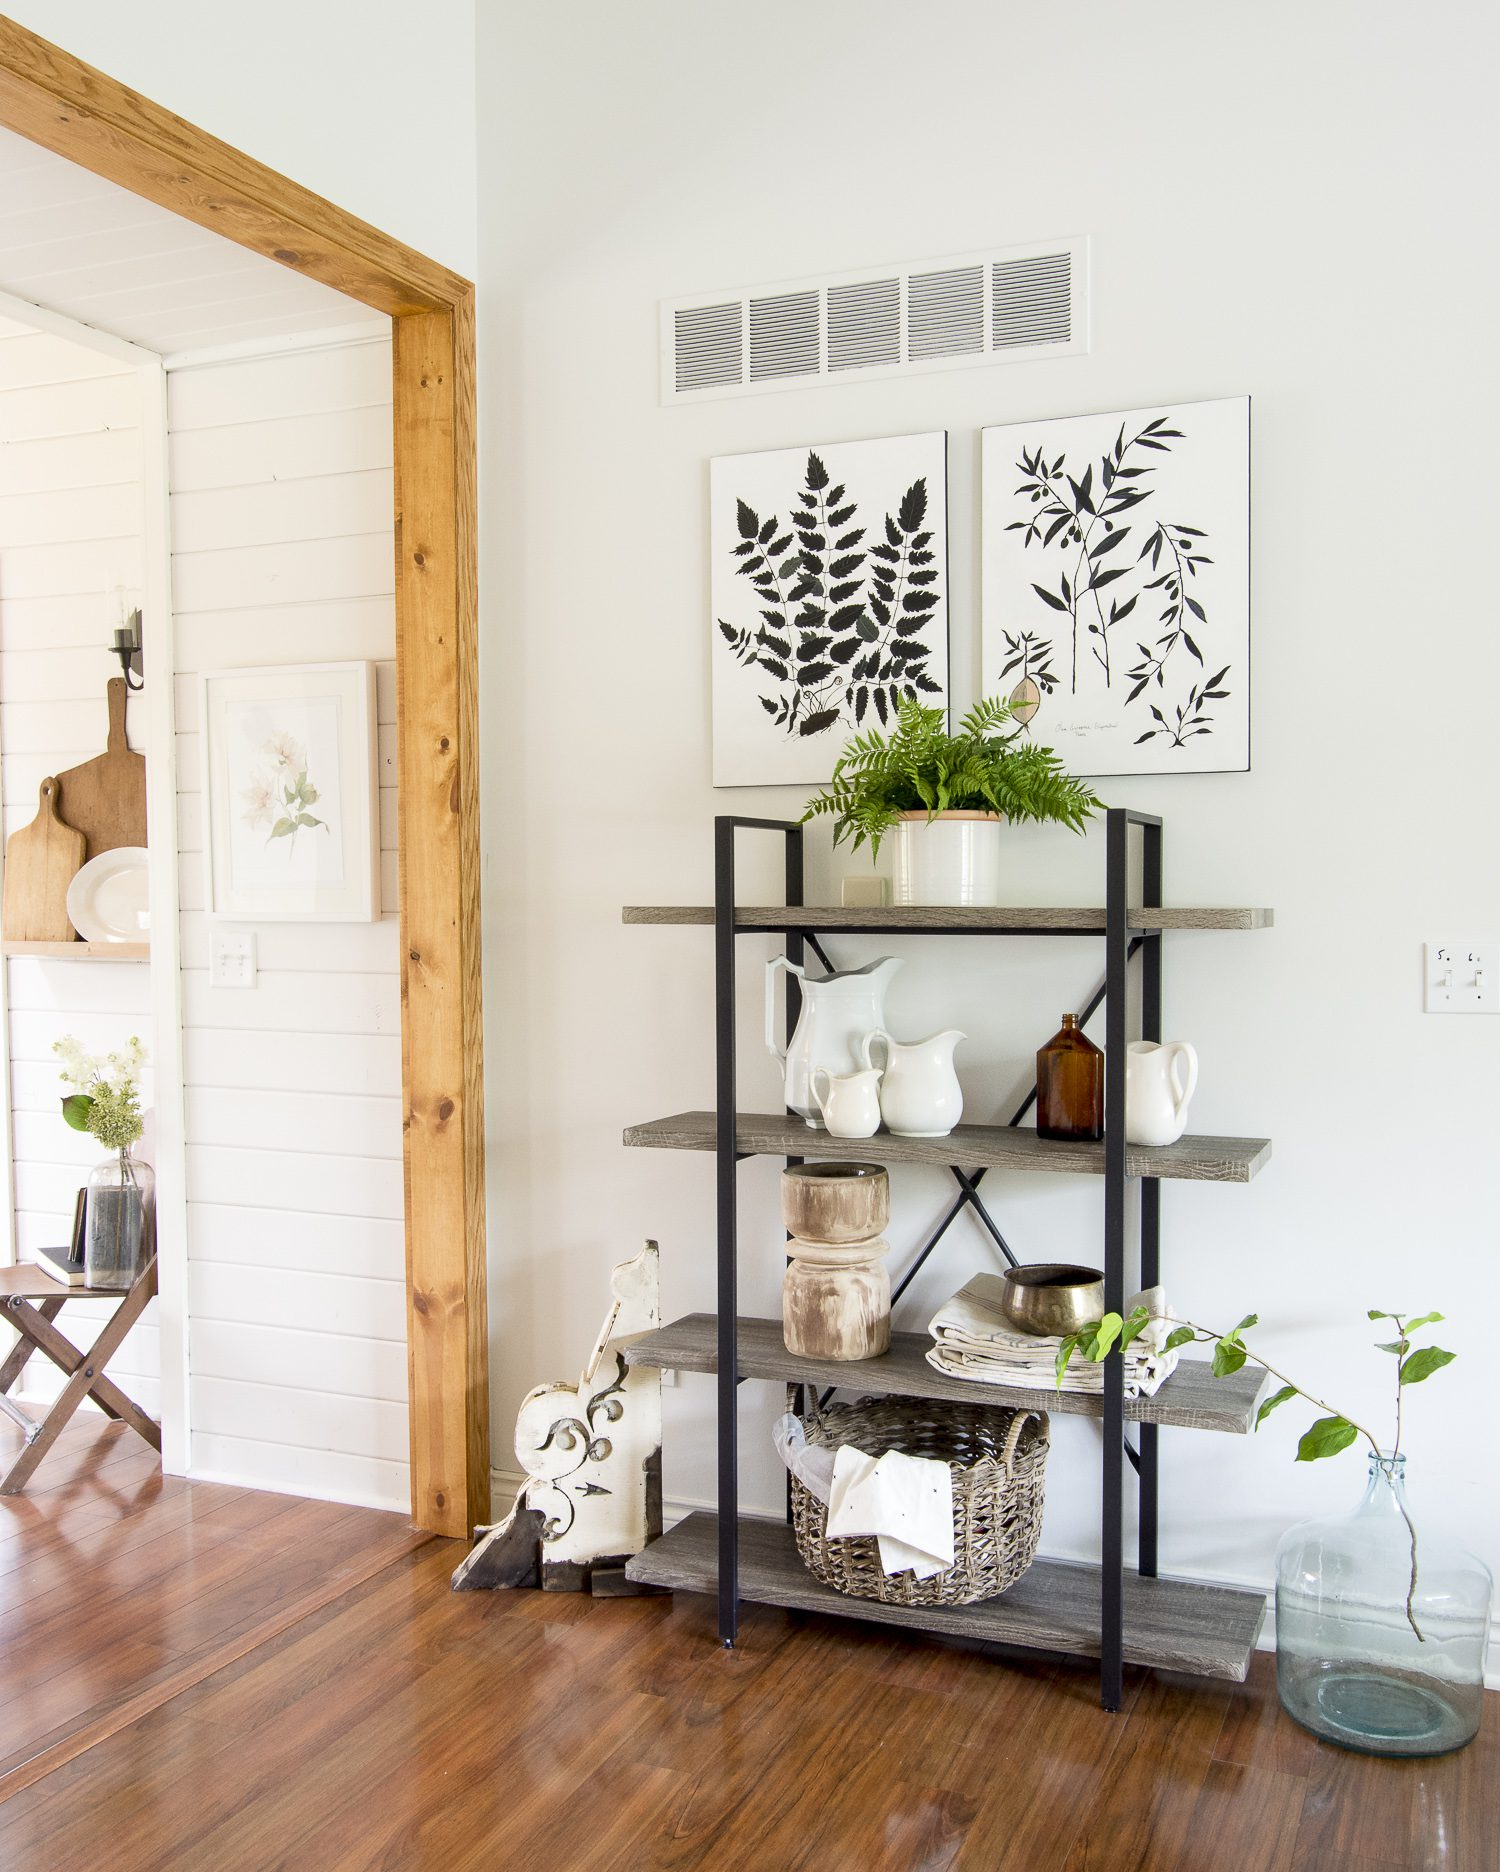 Ready to transform your home to the modern farmhouse design style? Here is my full home style guide with my best modern farmhouse decor sources. #fromhousetohaven #farmhouseinteriordesign #modernfarmhousestyle